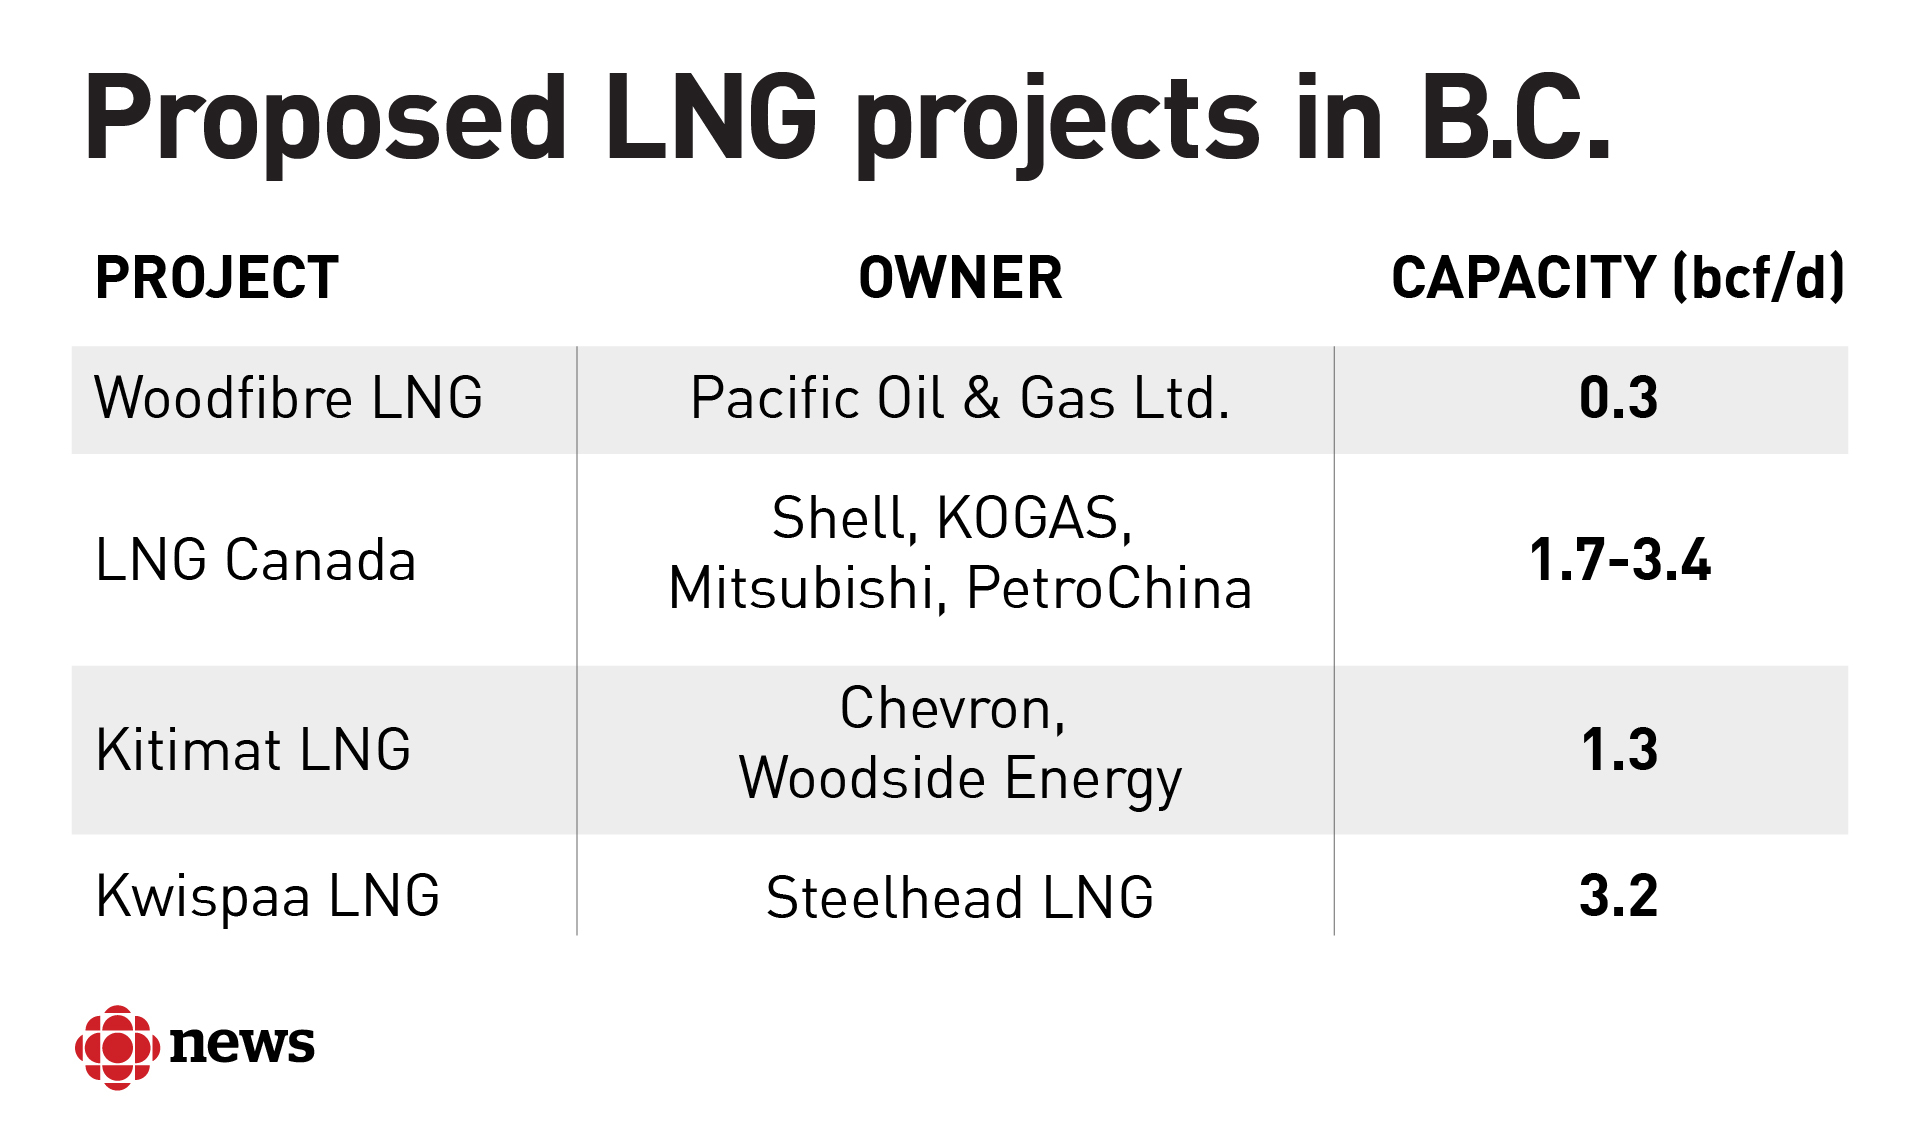 Four LNG project proposals are being pursued in B.C. All but the Kwispaa project have received environmental approvals from the federal and provincial governments. Capacity is measured in billions of cubic feet per day, which is the volume of natural gas that a facility is designed to handle.